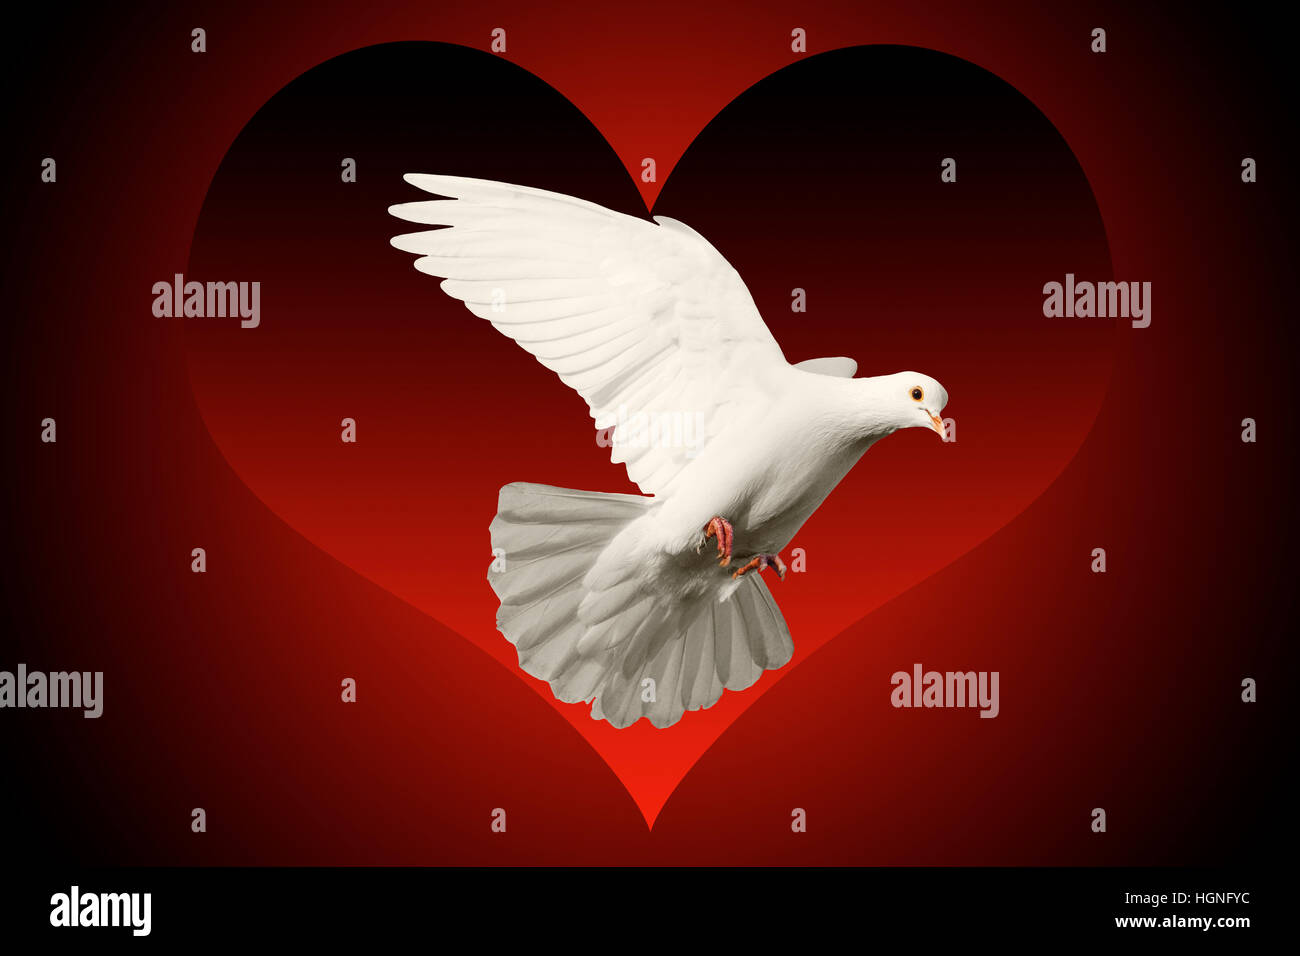 White dove flying symbol of love isolated on red and black heart white dove flying symbol of love isolated on red and black heart backgroundvalentines day a symbol of loyalty love peace symbol biocorpaavc